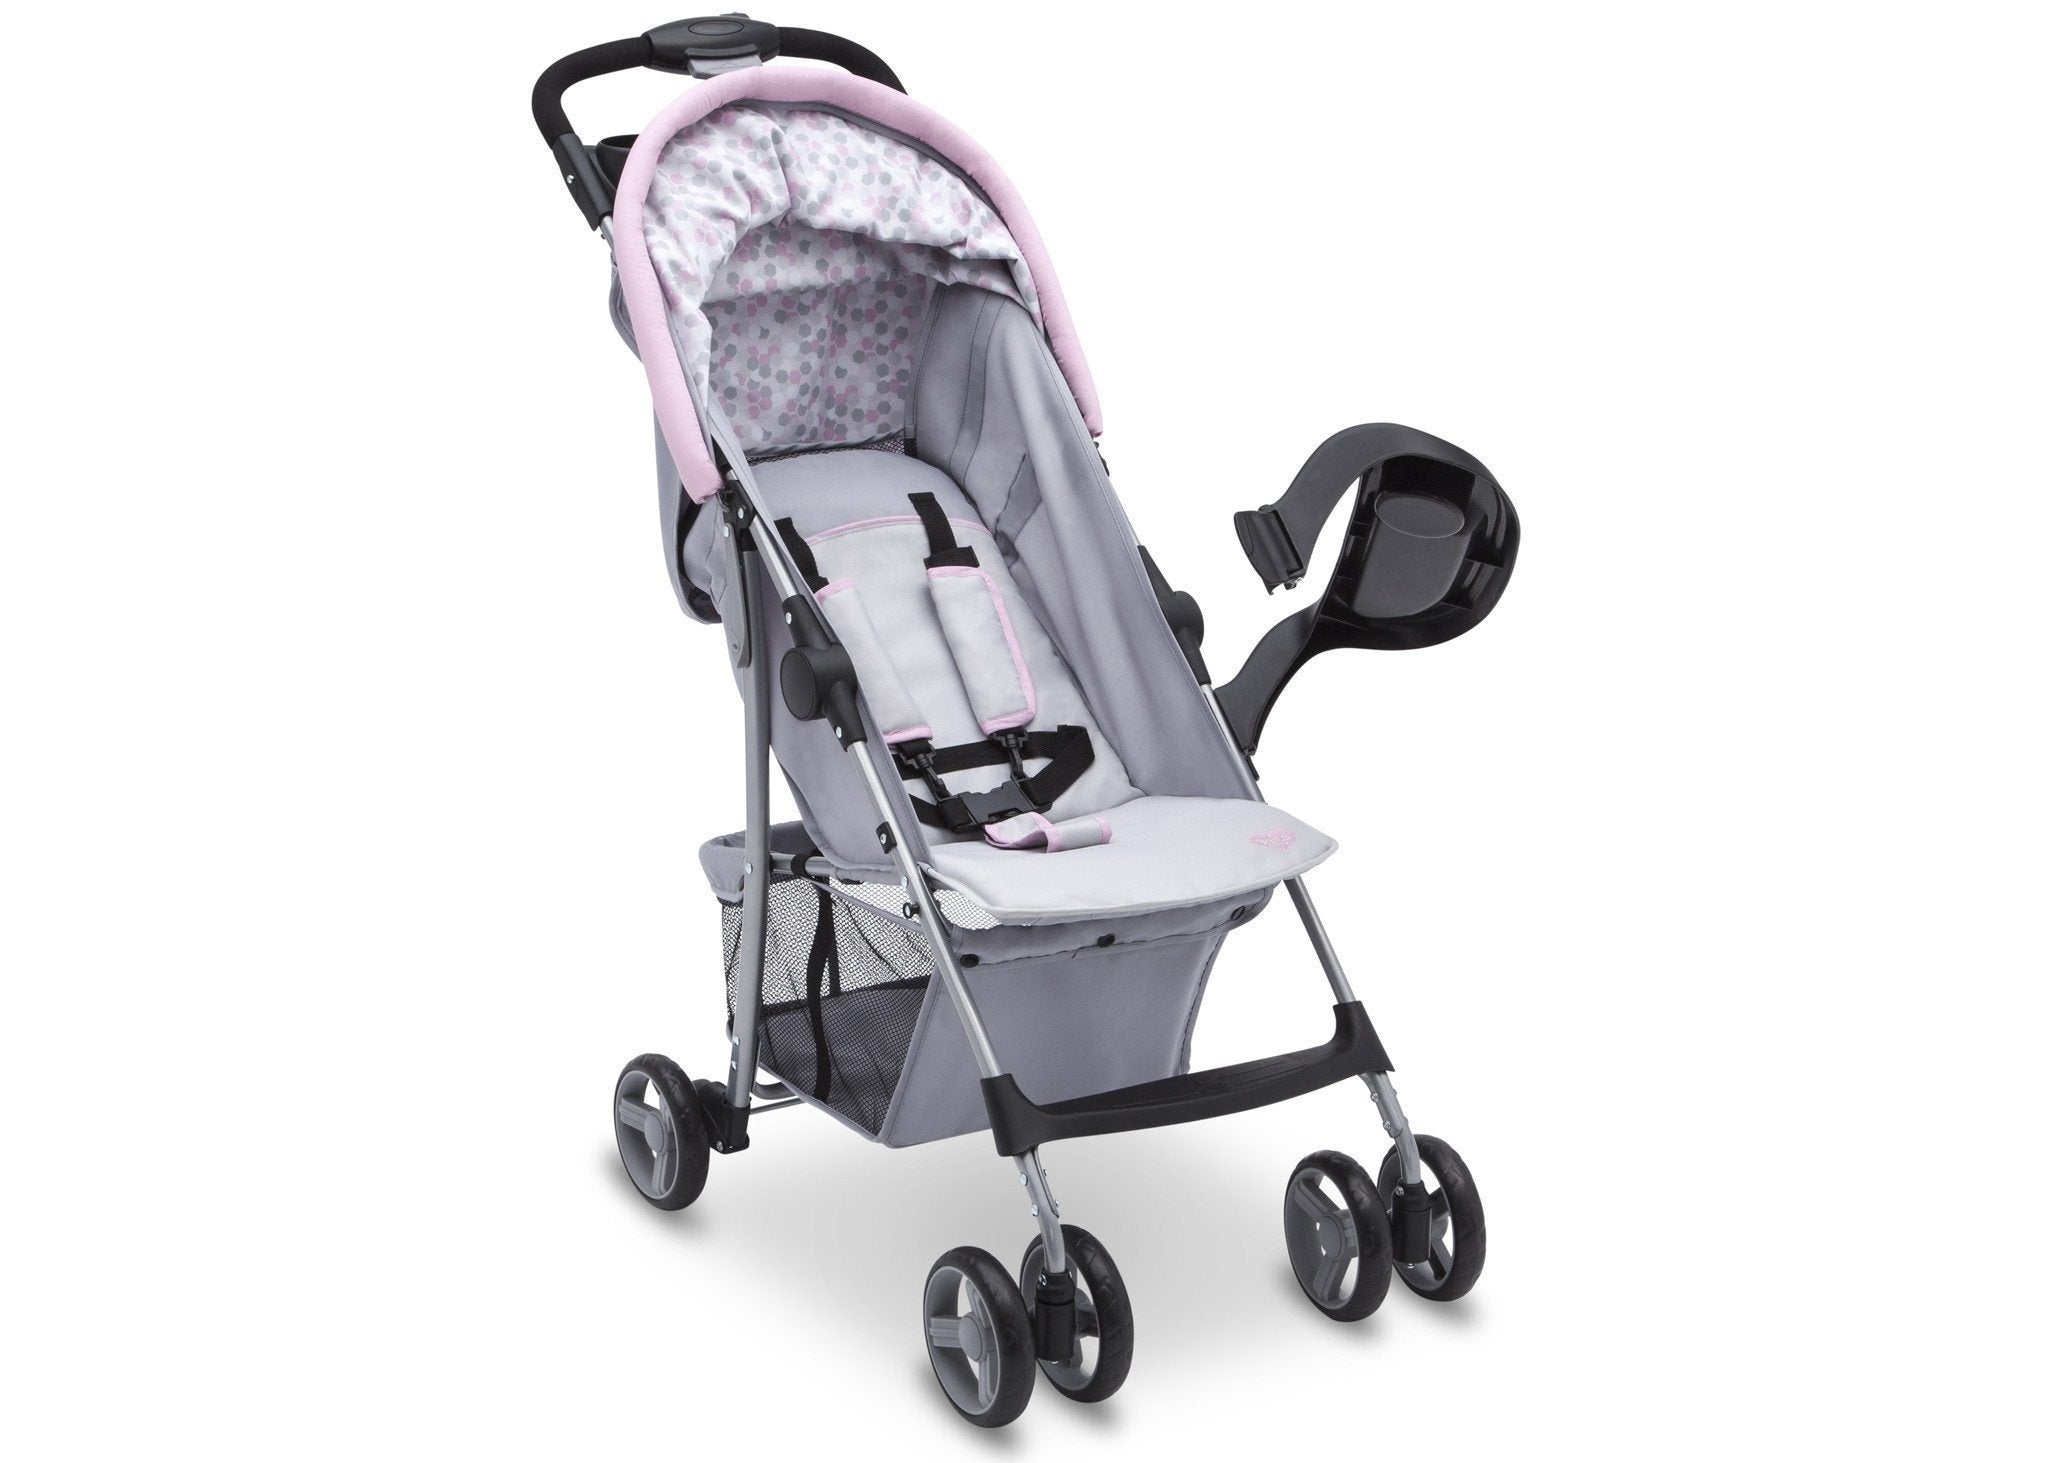 Delta Children Emily (2274) CX Rider Flat-Fold Stroller, Right View Lifted Arm c2c